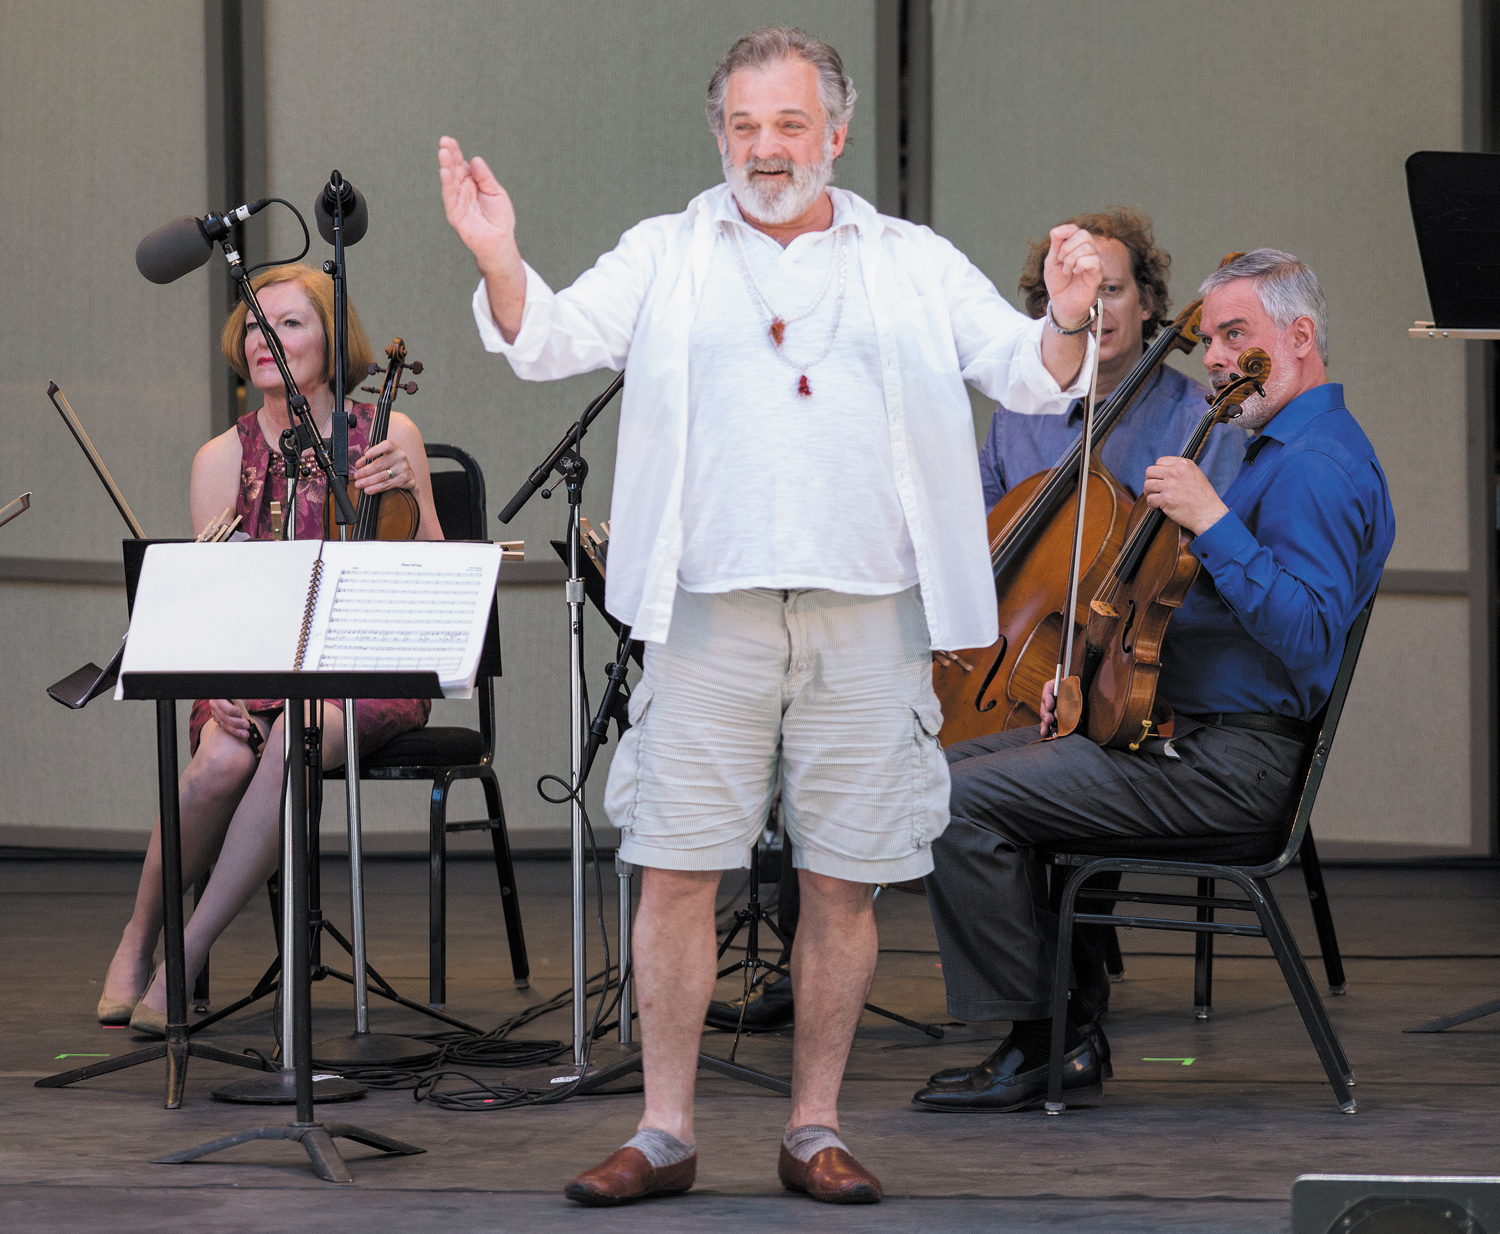 Mark-Morris-leads-audience-members-in-a-sing-along-at-the-Ojai-Music-Festival